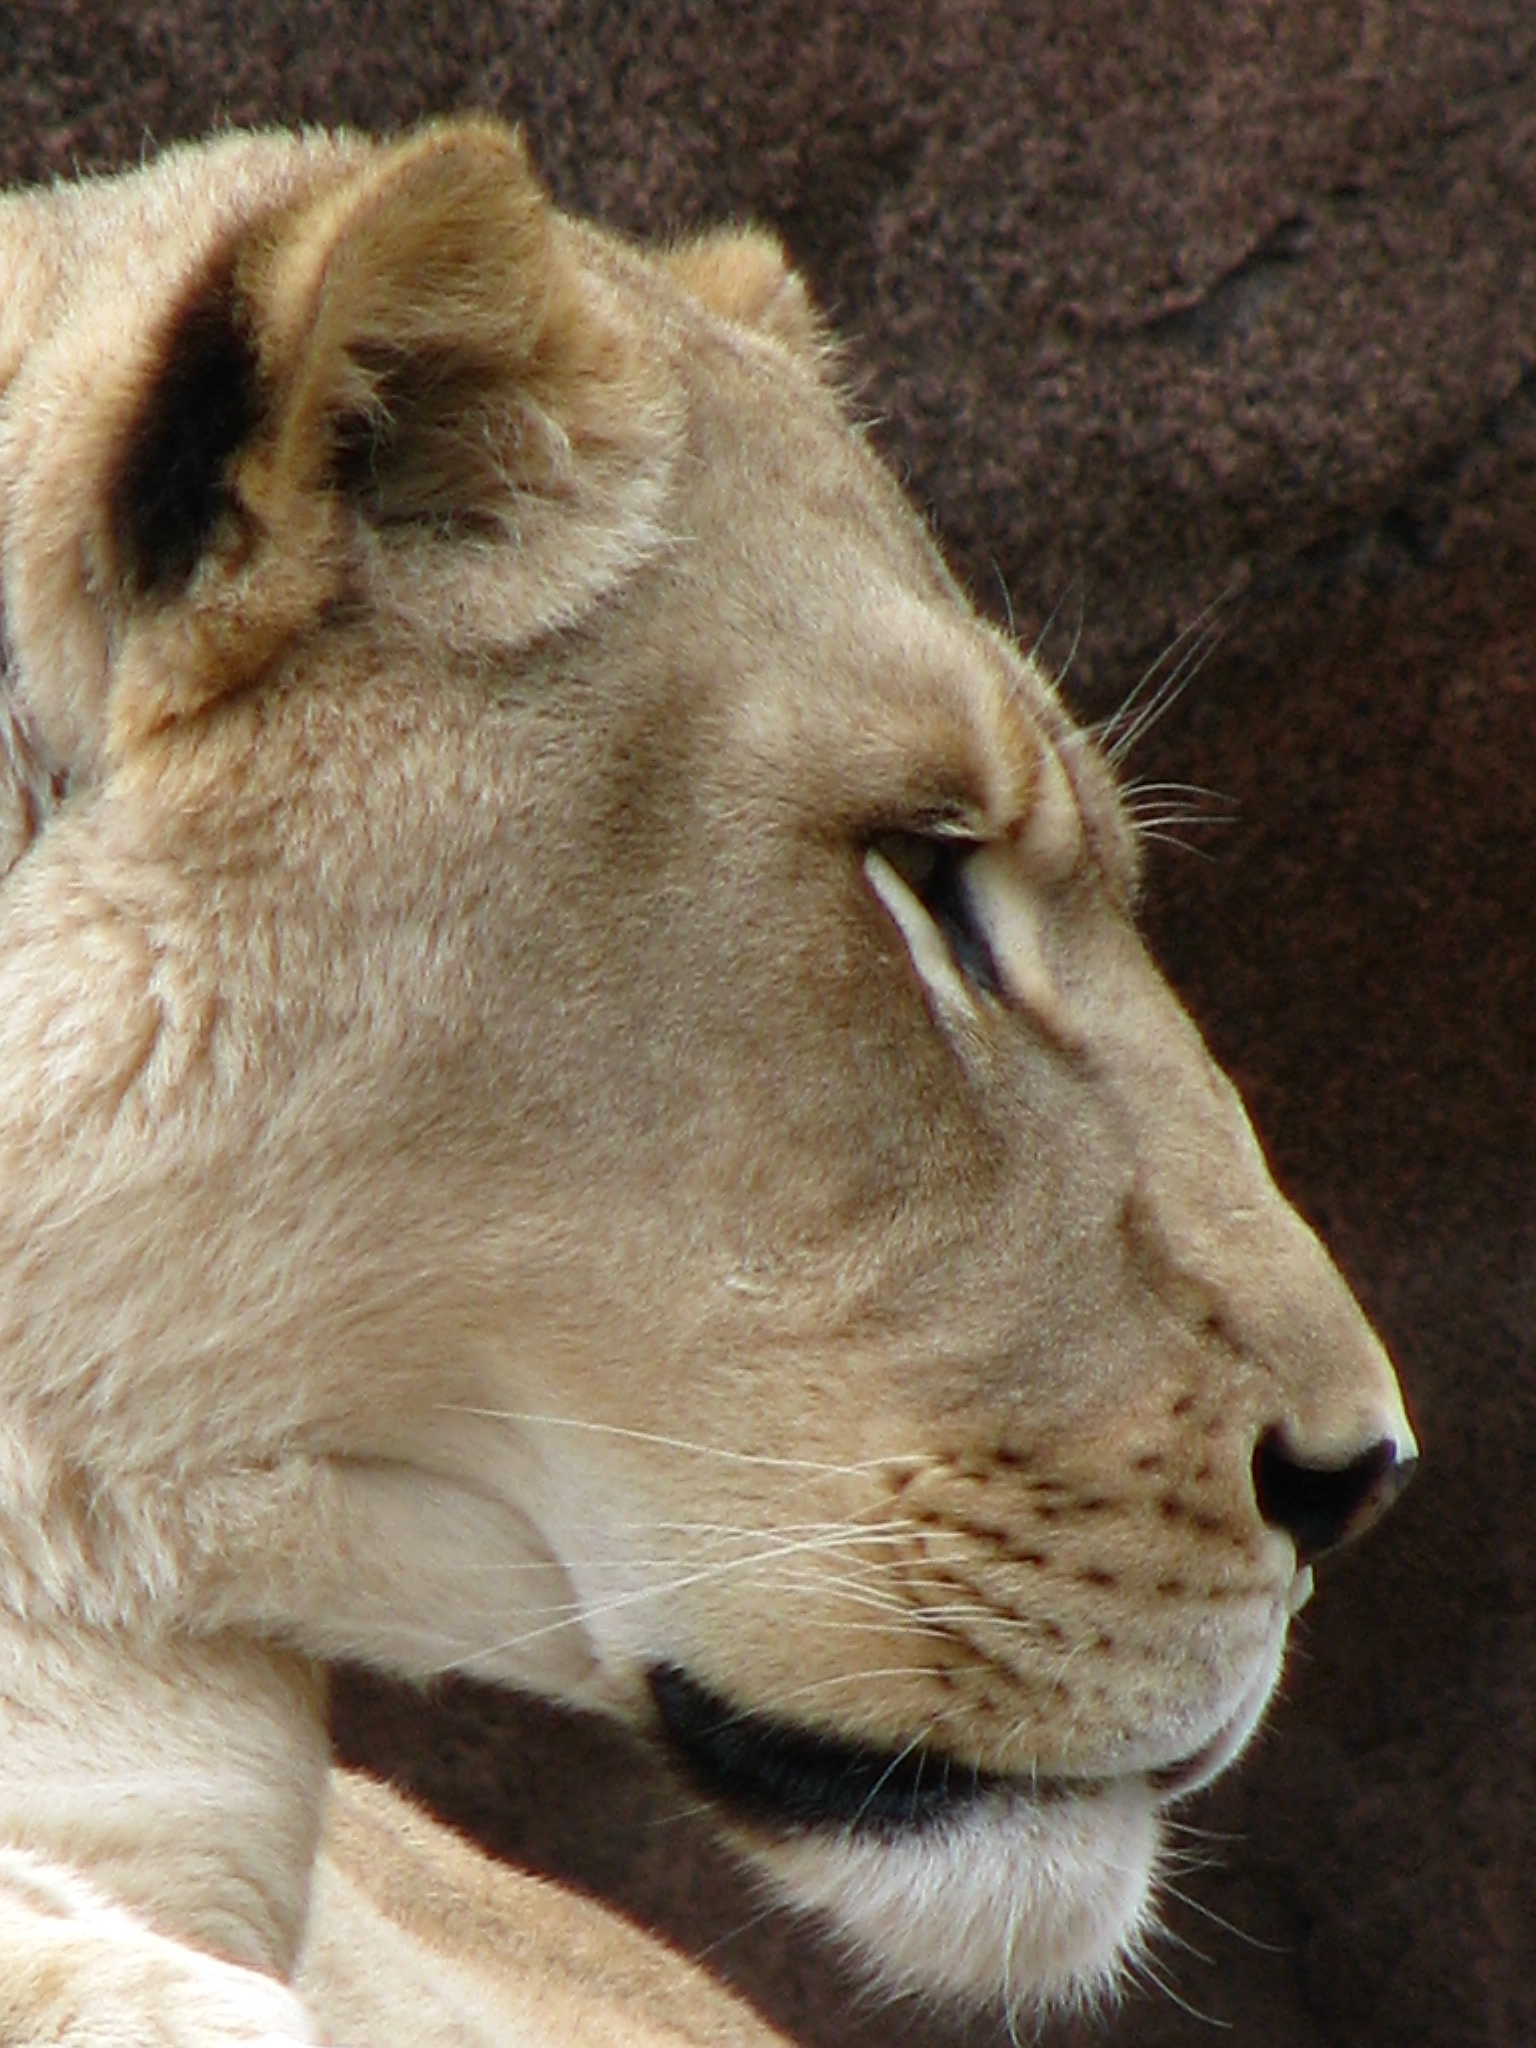 Lioness in profile, Animal, Predator, Whisks, Tiger, HQ Photo